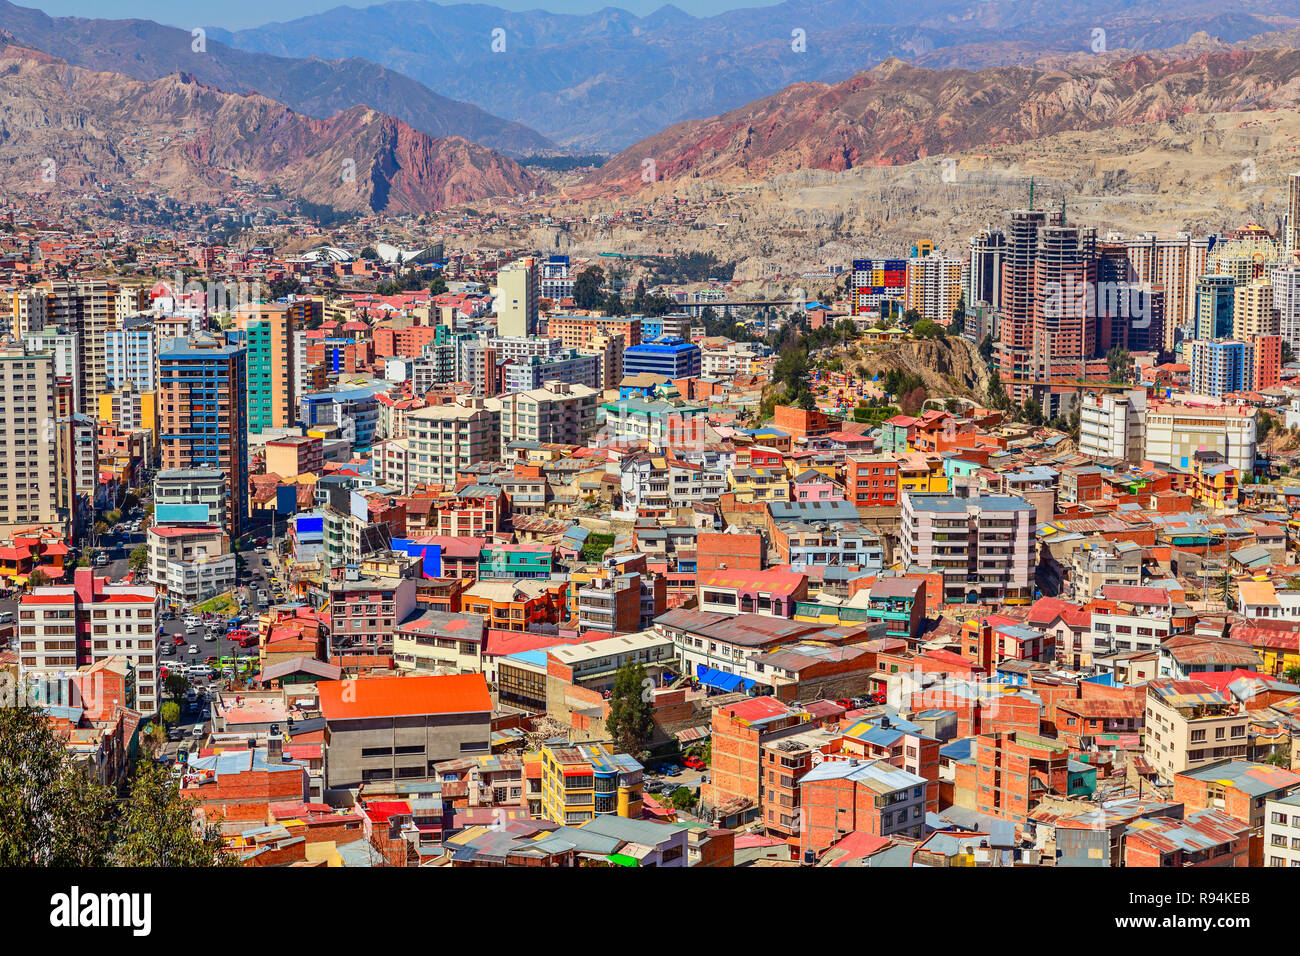 Nuestra Senora de La Paz rapidly growing colorful city suburbs with lots of living houses scattered on the hill in background, Bolivia. - Stock Image